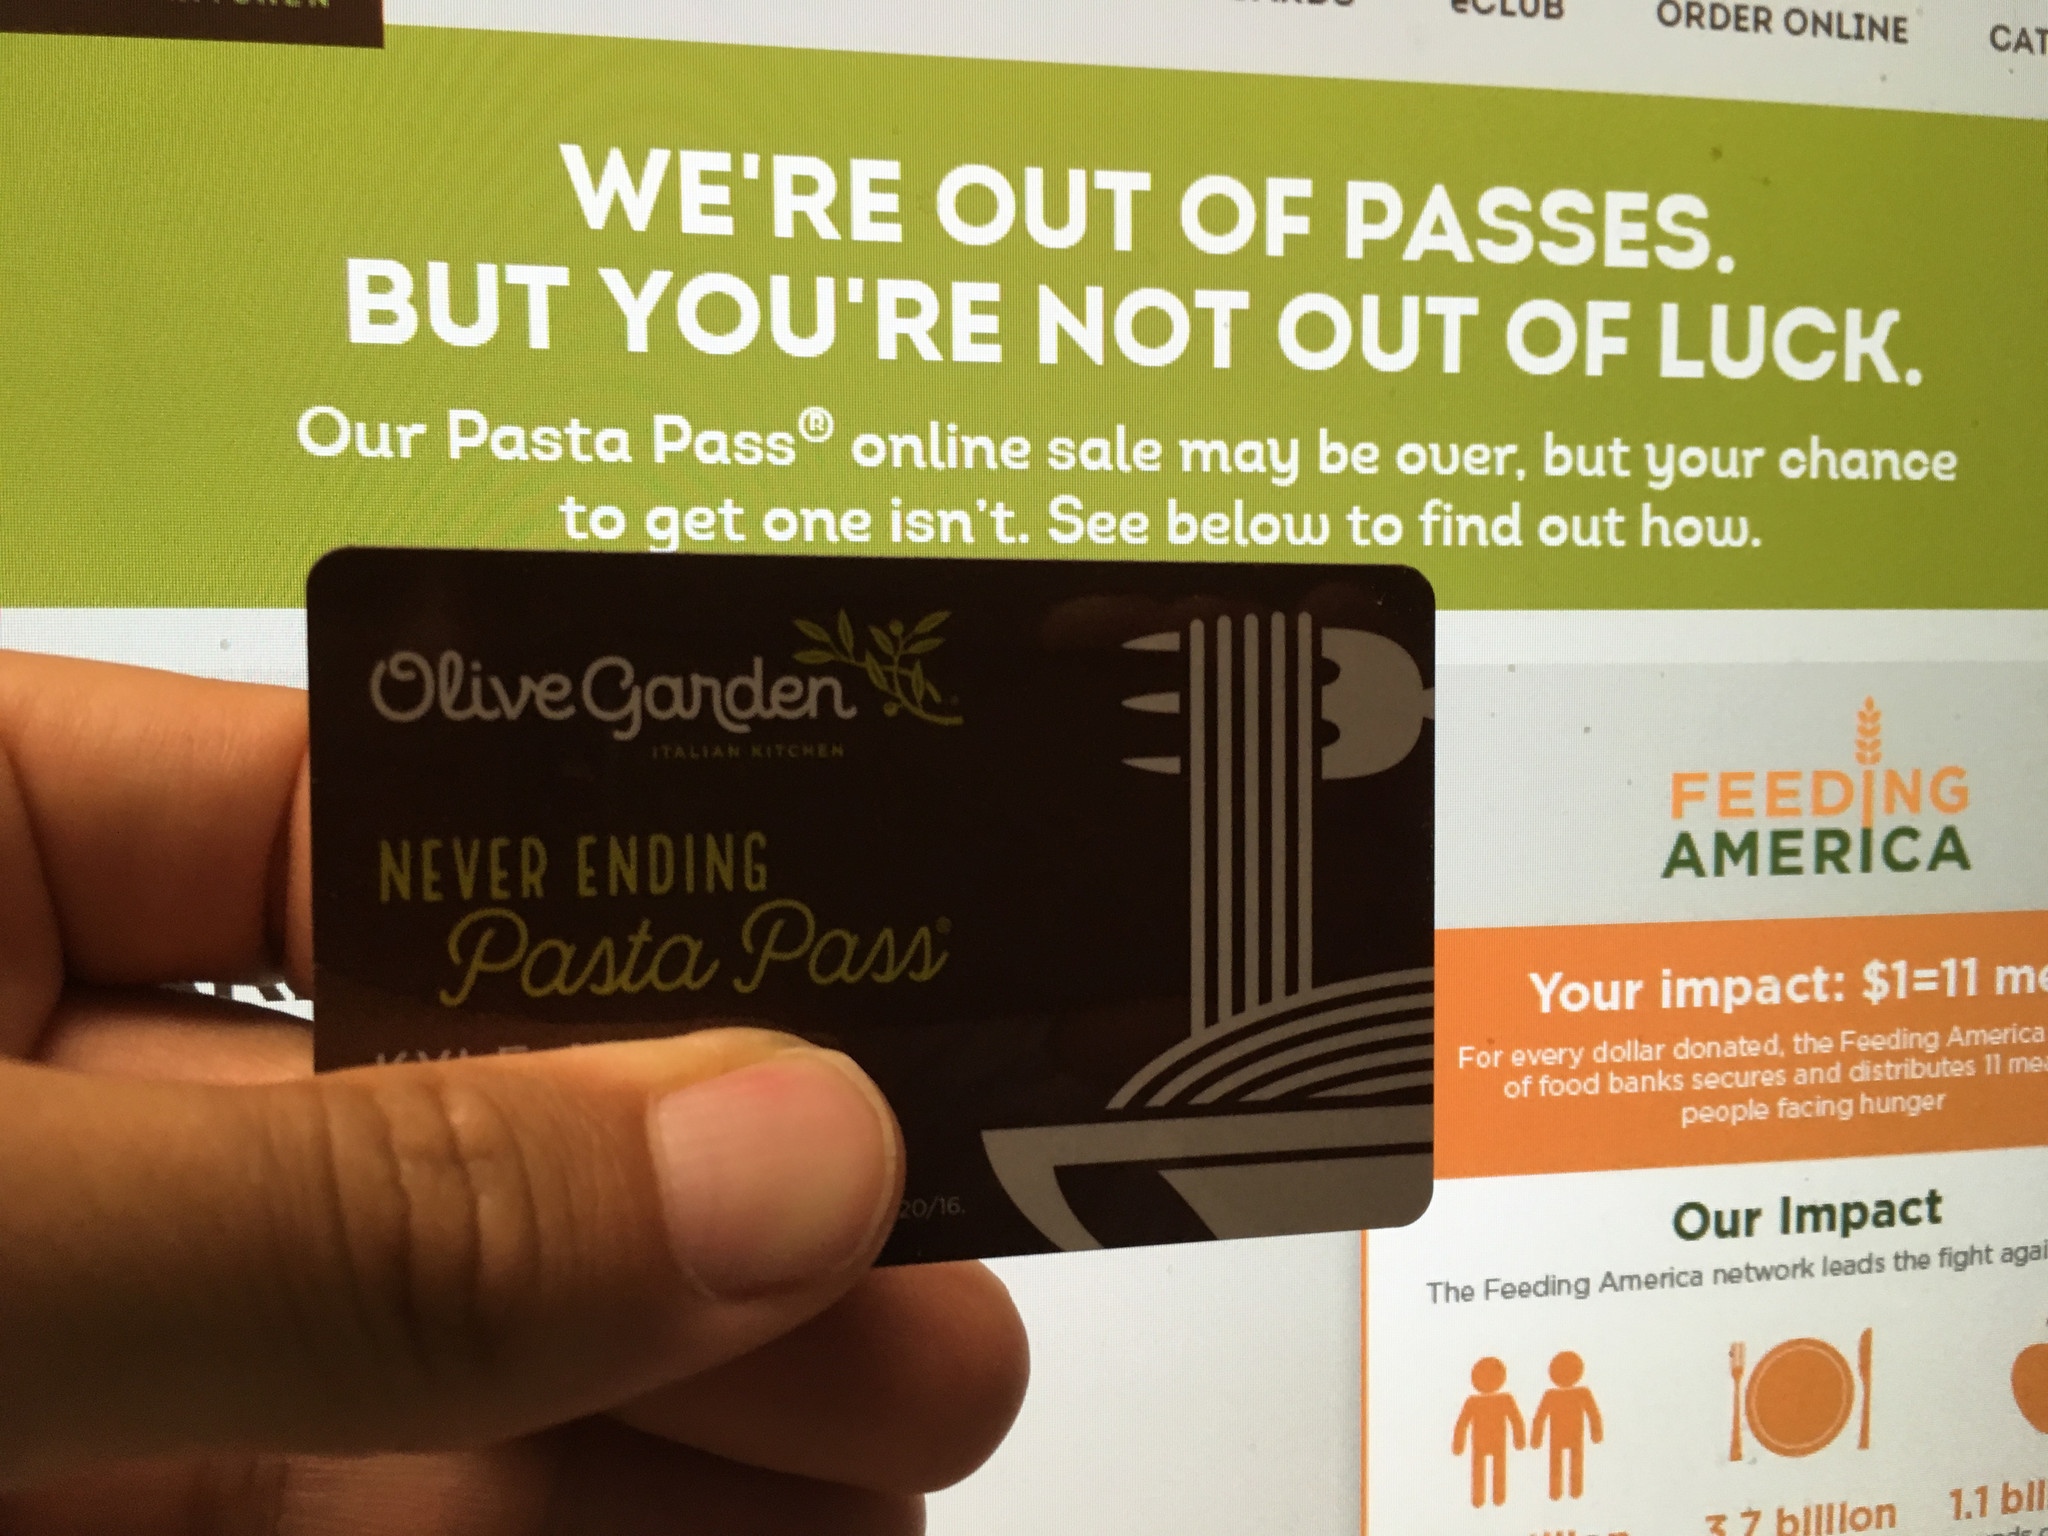 olive garden sells out of 21000 never ending pasta passes in minutes orlando sentinel - Olive Garden Online Ordering